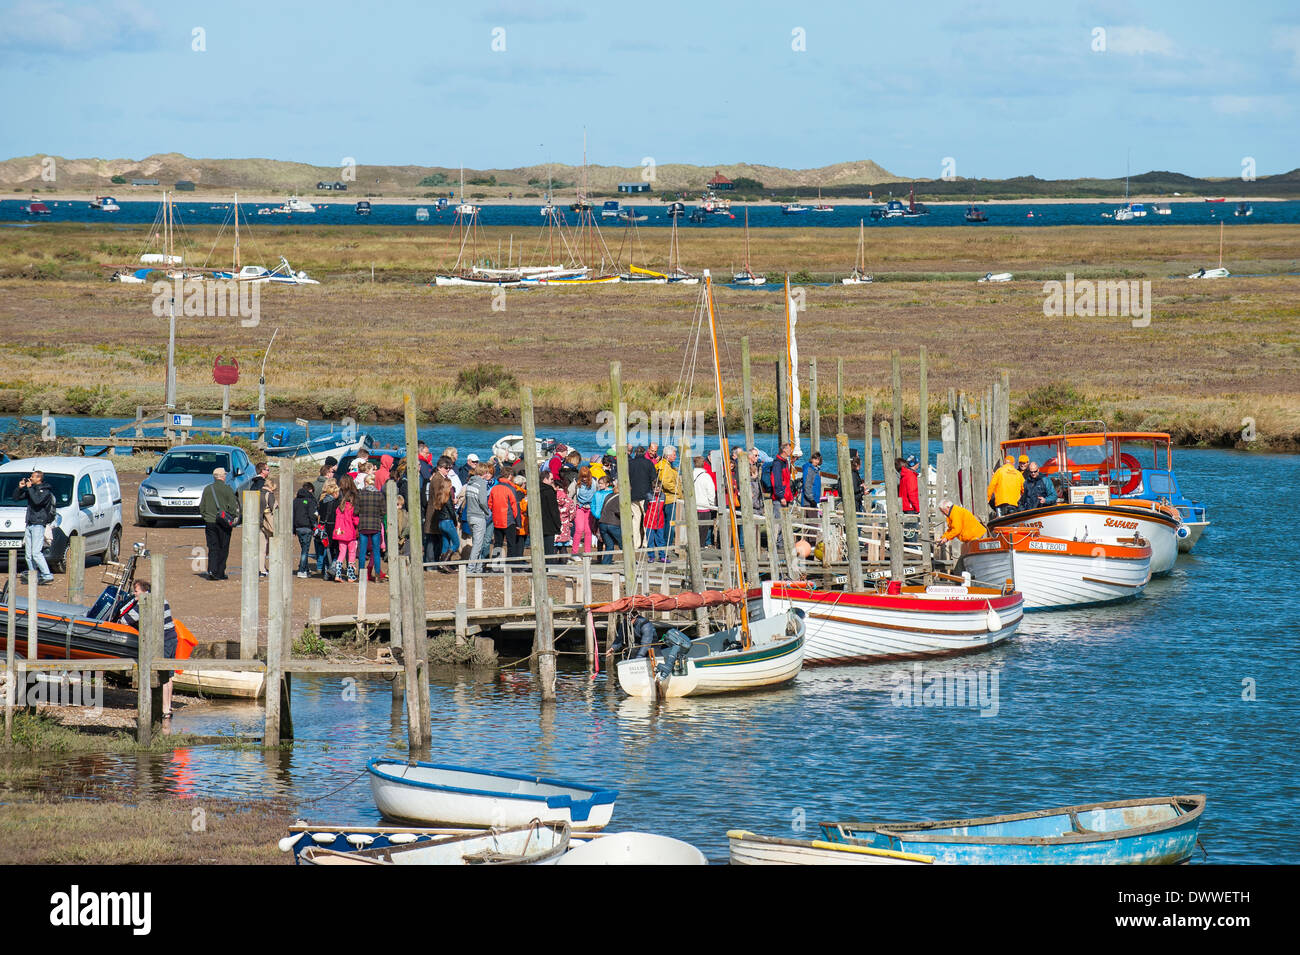 Morston Quay with tourists about to embark on to the boats to view the seals at Blakeney Point, Norfolk, England, September - Stock Image